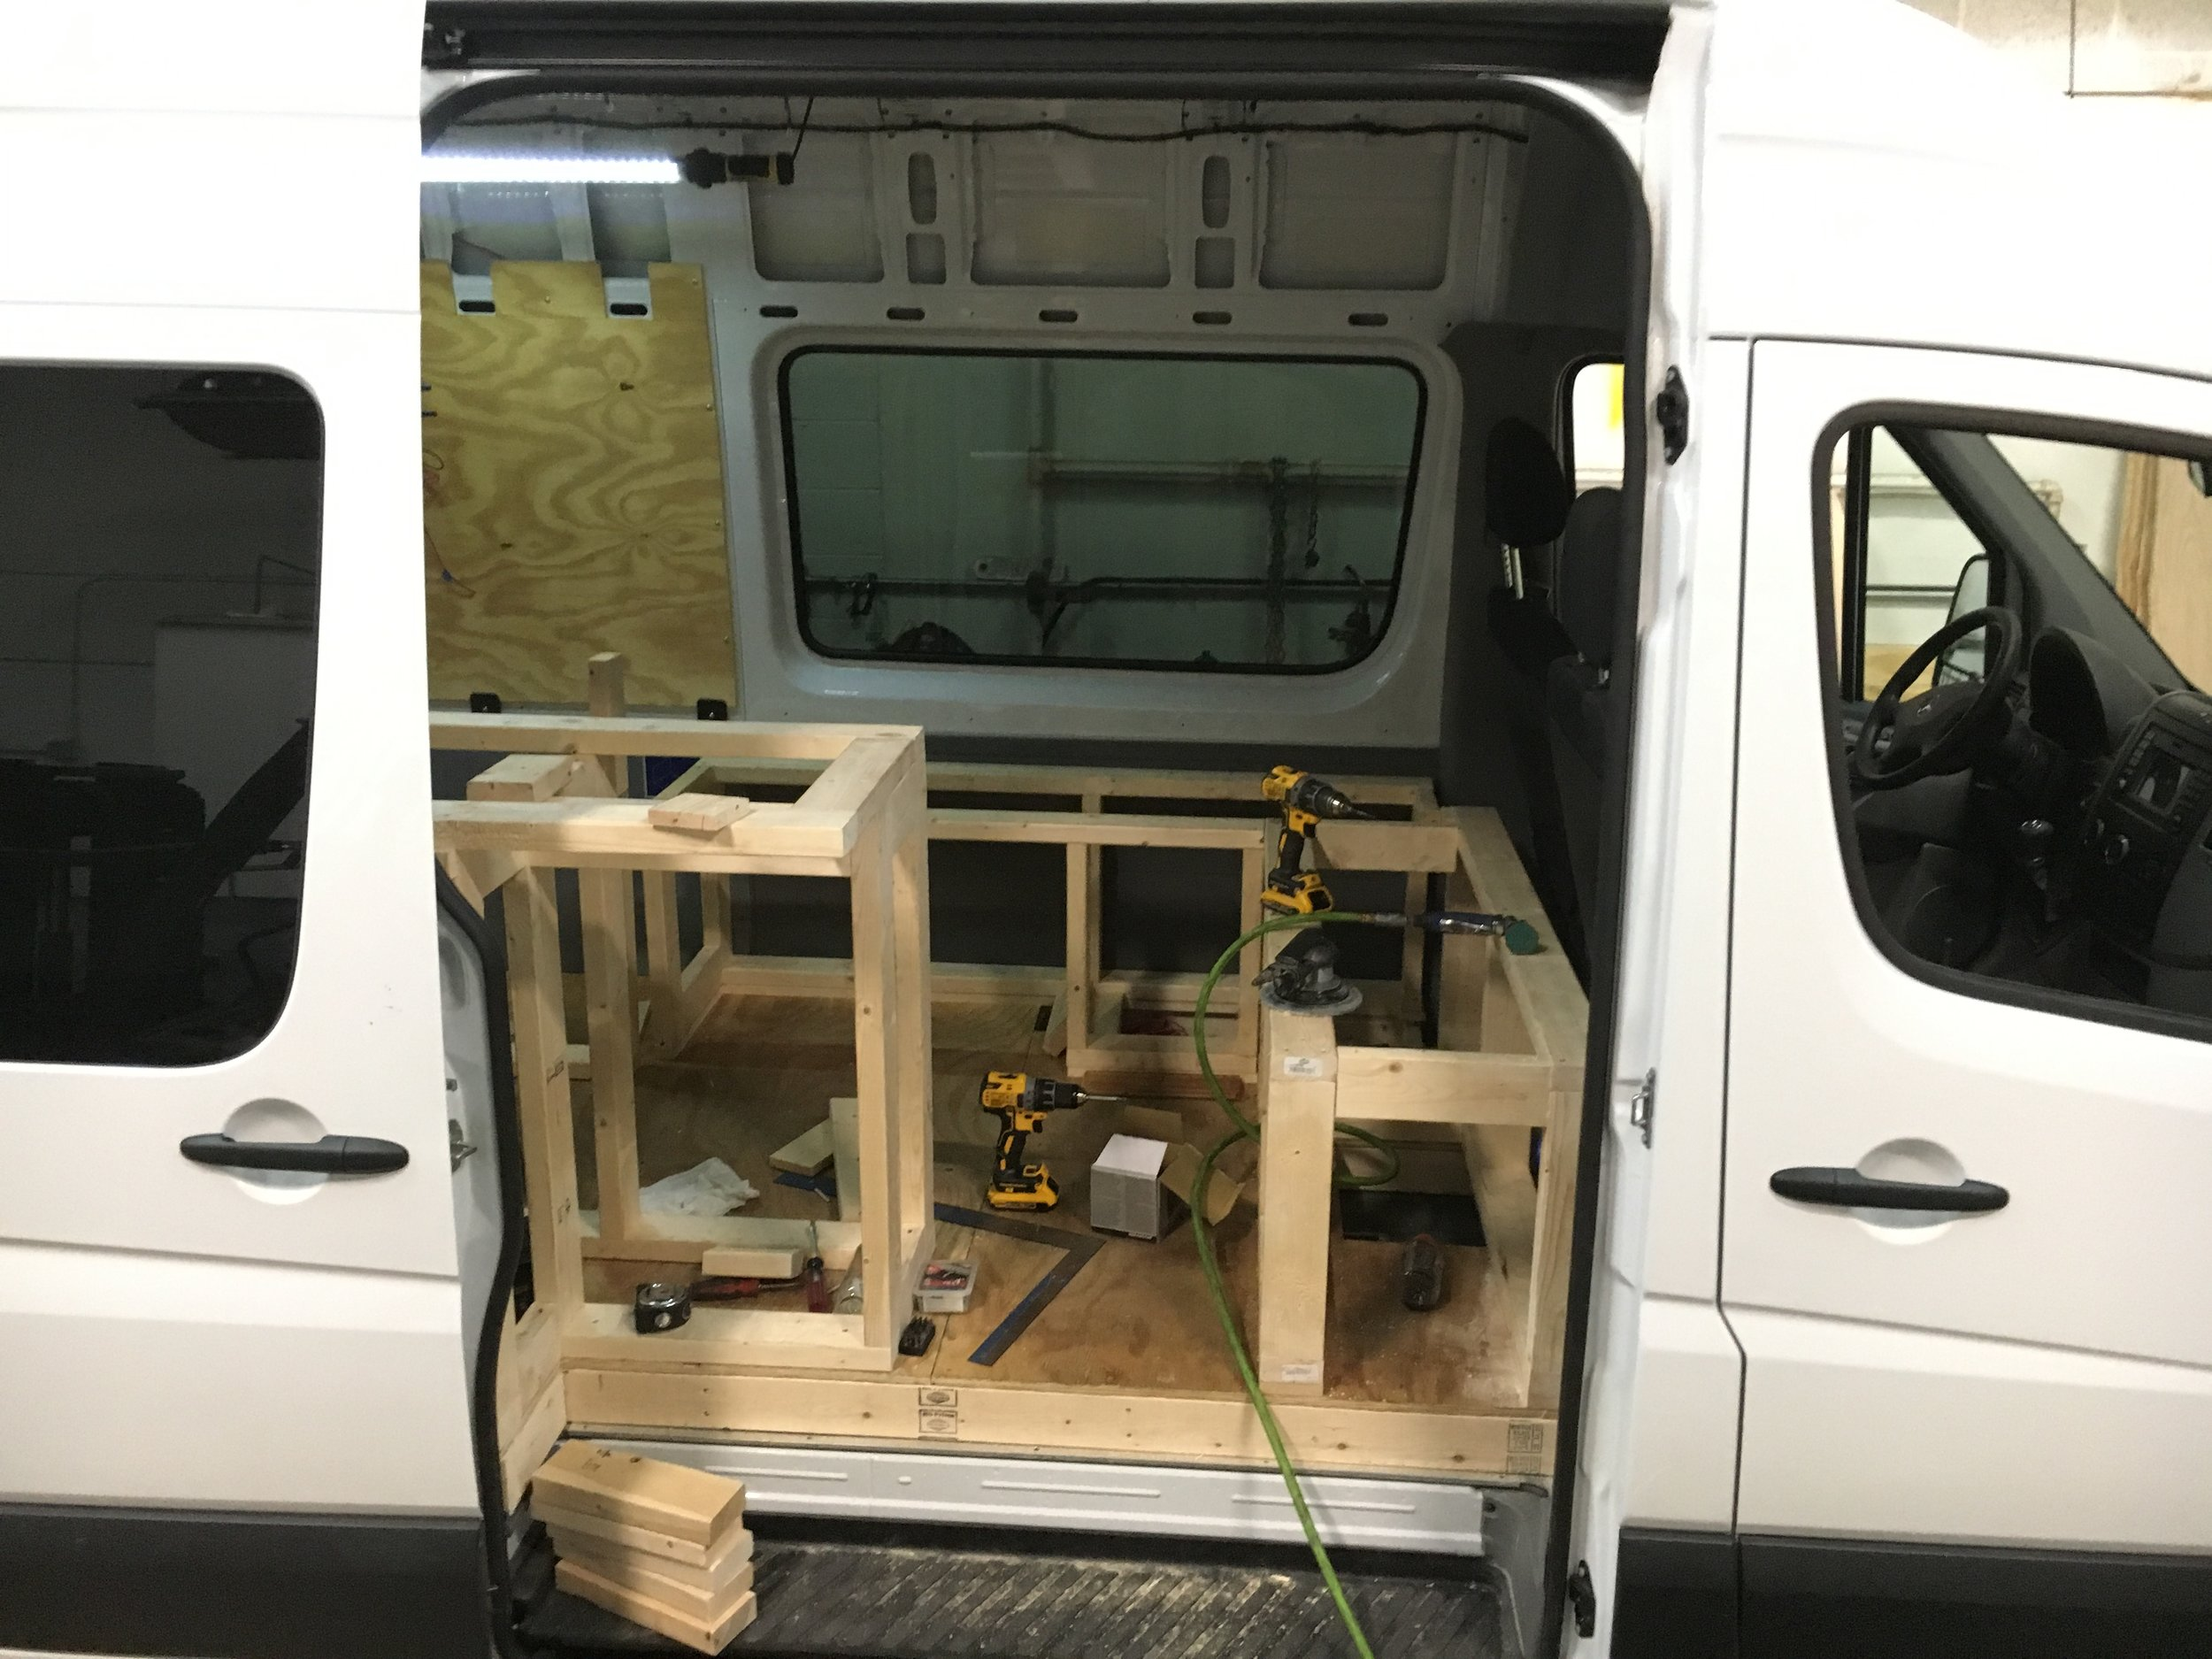 Van Project - Our Team at American Bully Manufacturing Converts a 2018 Mercedes Sprinter Van into an awesome cross country adventure vehicle. When a customer came to us looking to convert there van we saw a great opportunity to showcase our expertise is a variety of disciplines on one project.